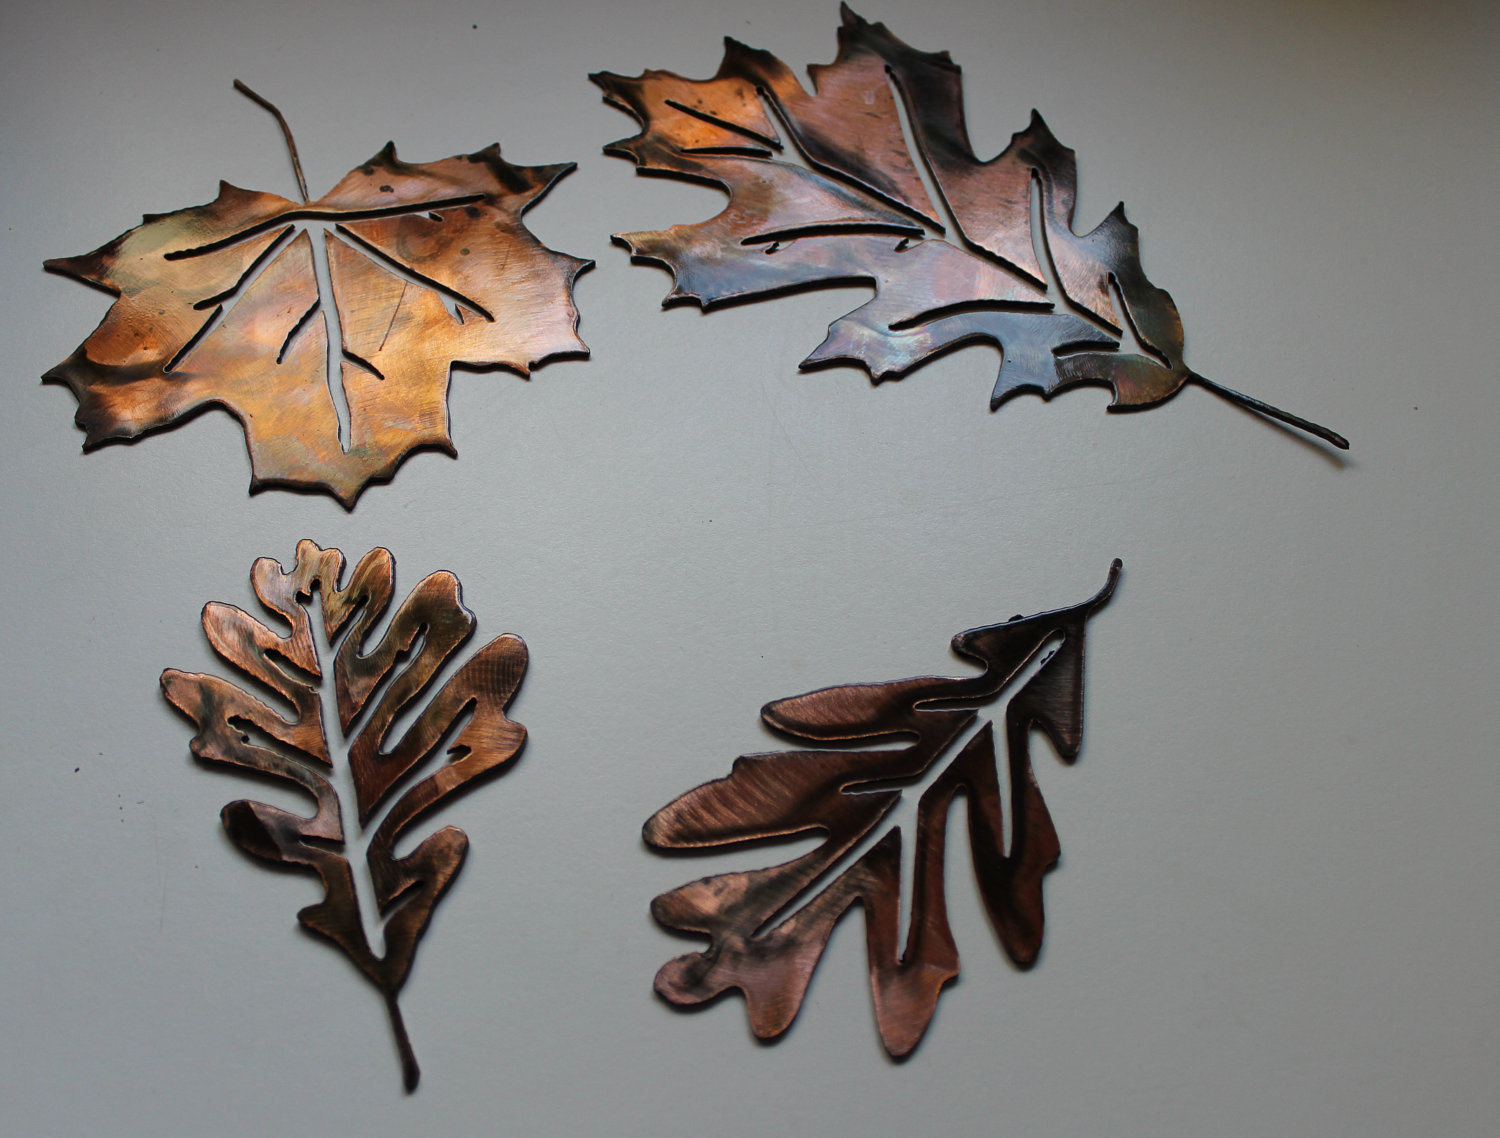 Metal Leaf Wall Decor By Red Barrel Studio Intended For Well Known Stlye Metal Leaves Wall Decor Design Idea And Decors How Custom (View 6 of 20)